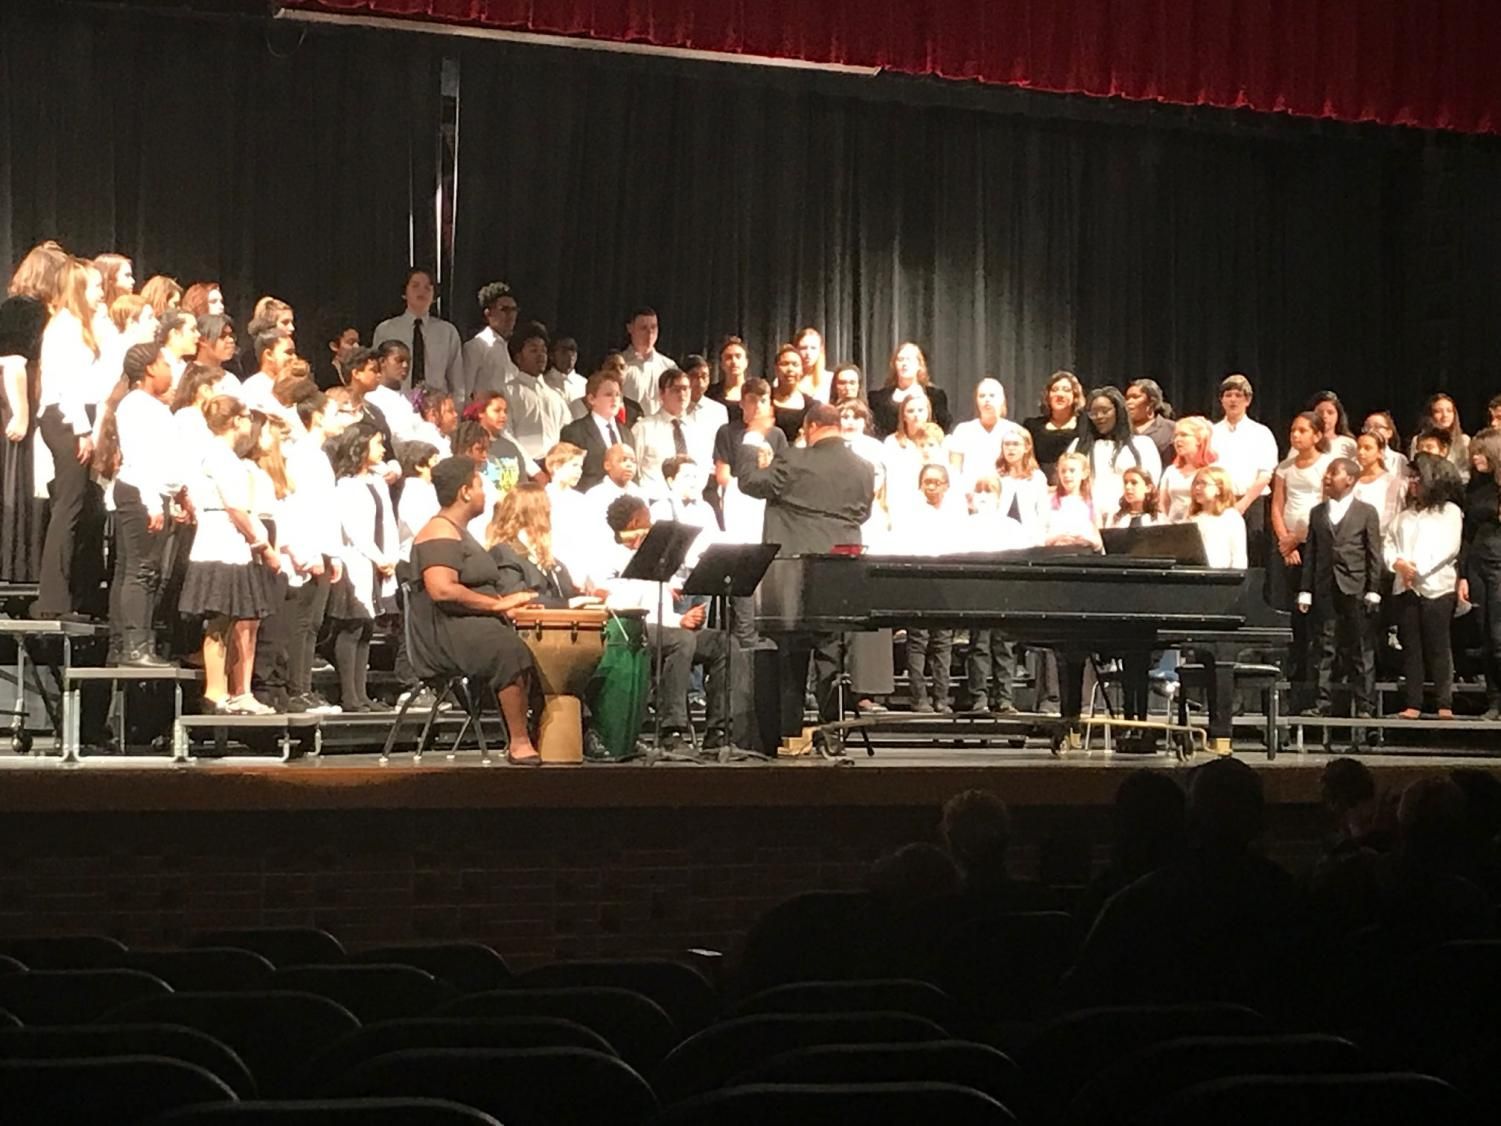 Mr. Pinder conducts the combined voices of current and past students during the Spring Alumni Concert in March 2019.